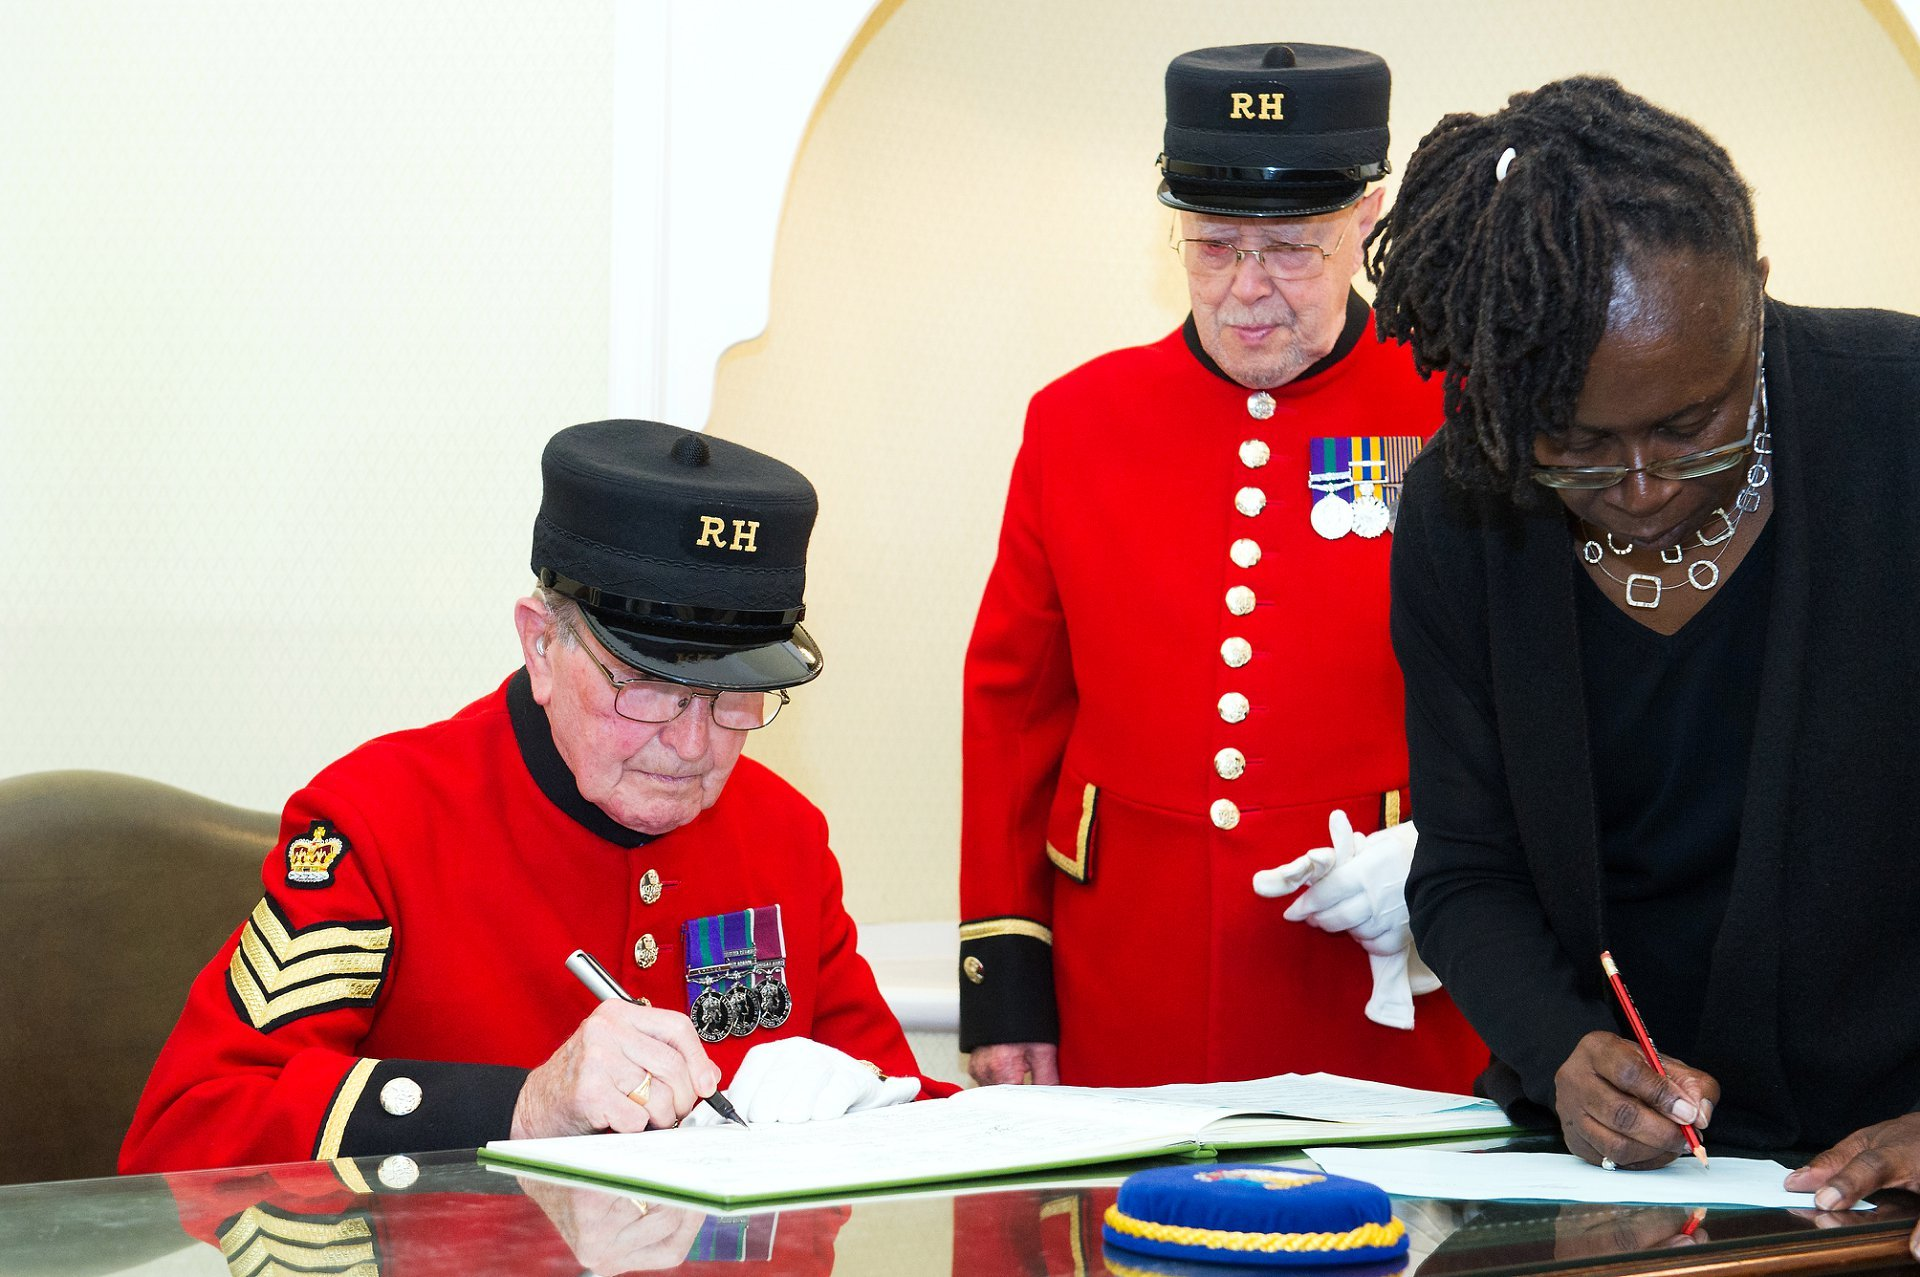 chelsea pensioner wedding witness in the rossetti room at chelsea old town hall